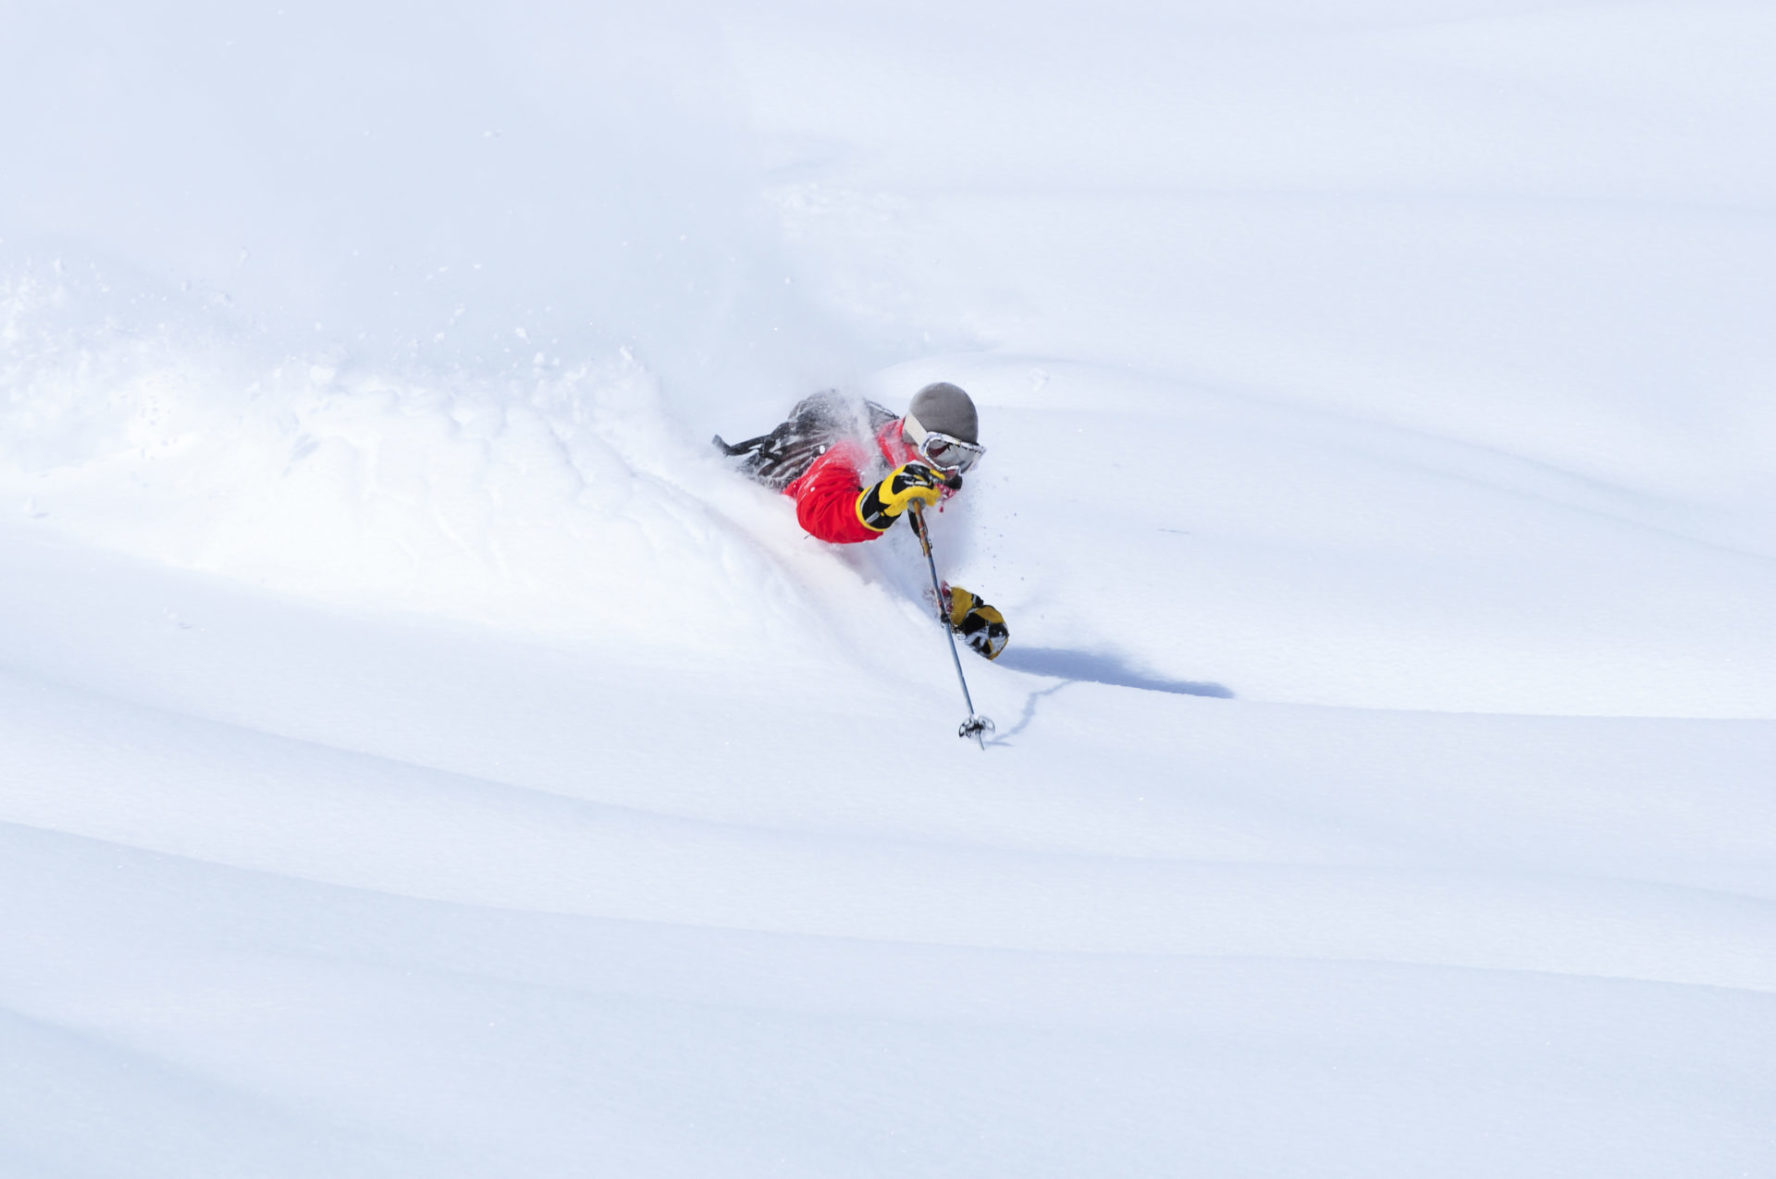 Colorado powder skiing